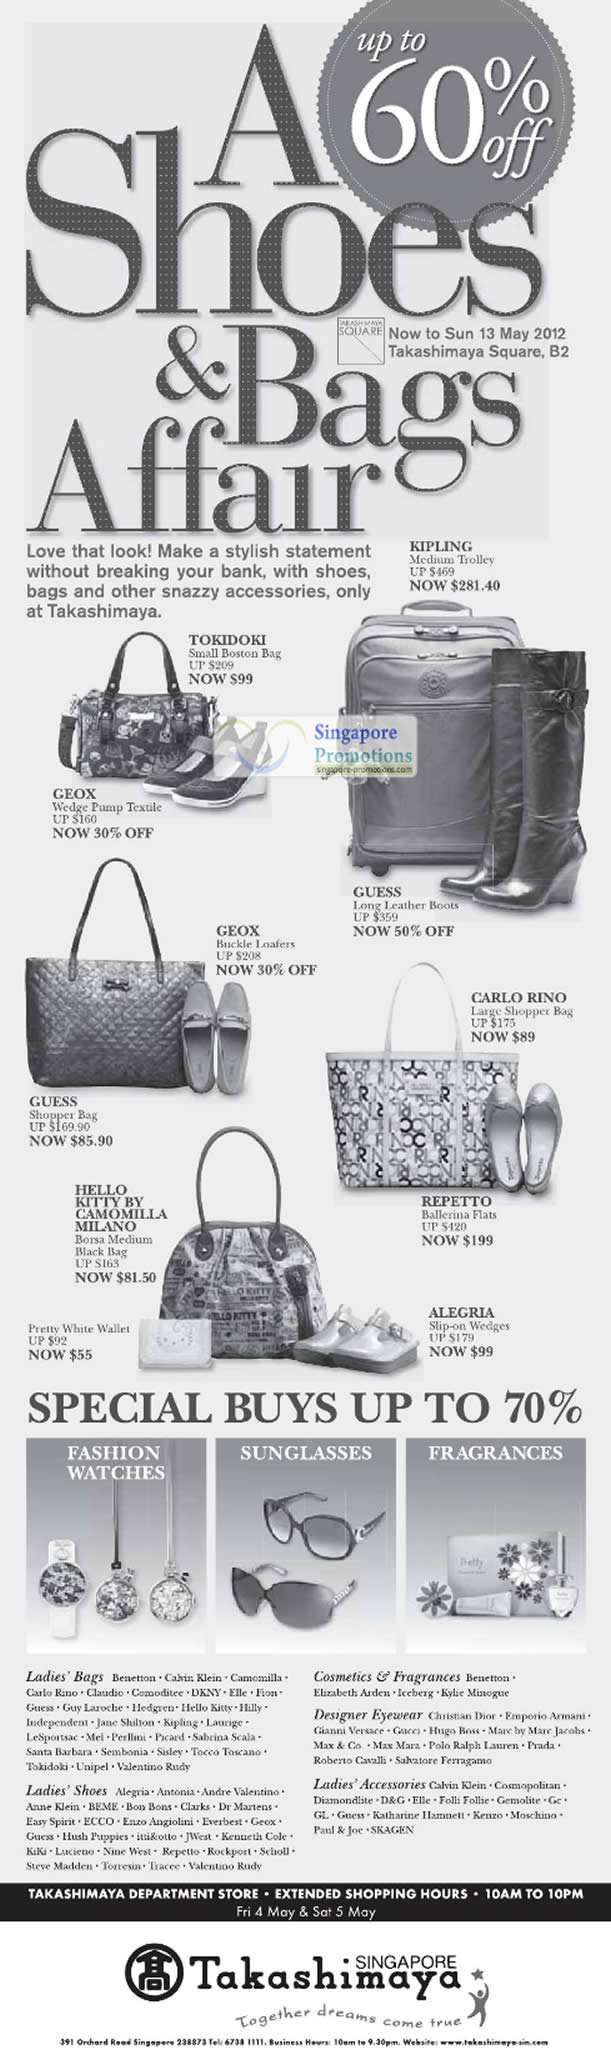 4 May Hand Bags, Geox, Tokidoki, Carlo Rino, Hello Kitty by Camomilla Milano, Repetto, Alegria, Guess Boots, Geox Loafers